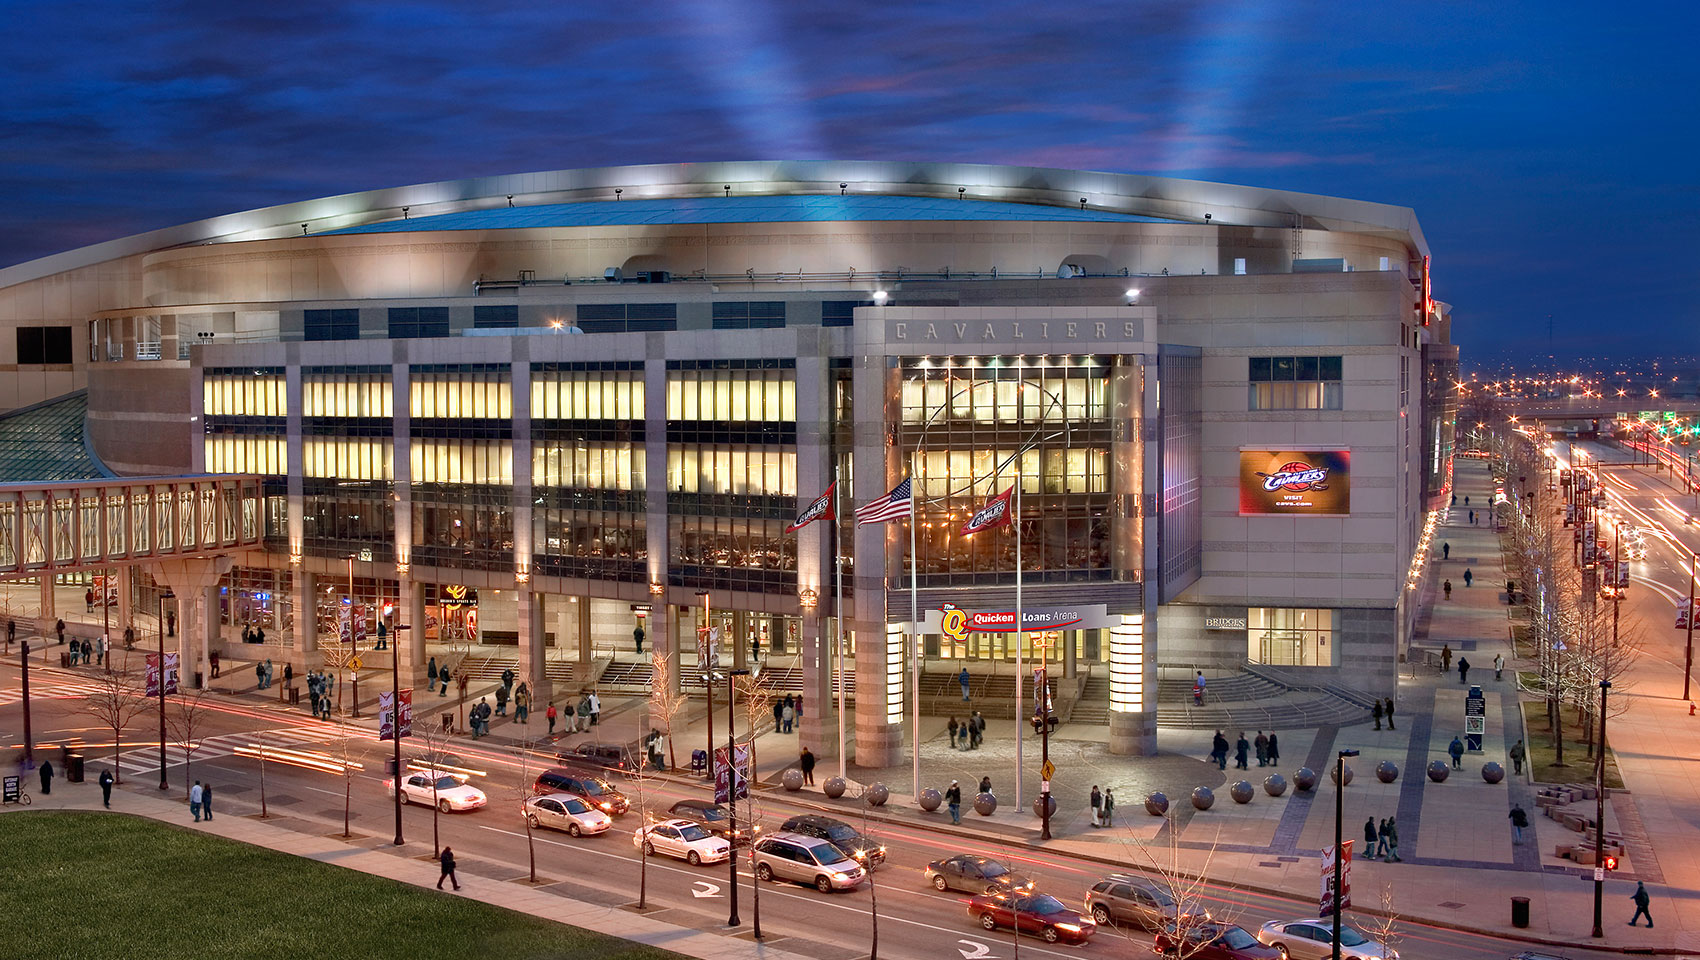 Hotels Near Quicken Loans Arena | Kimpton Schofield Hotel on